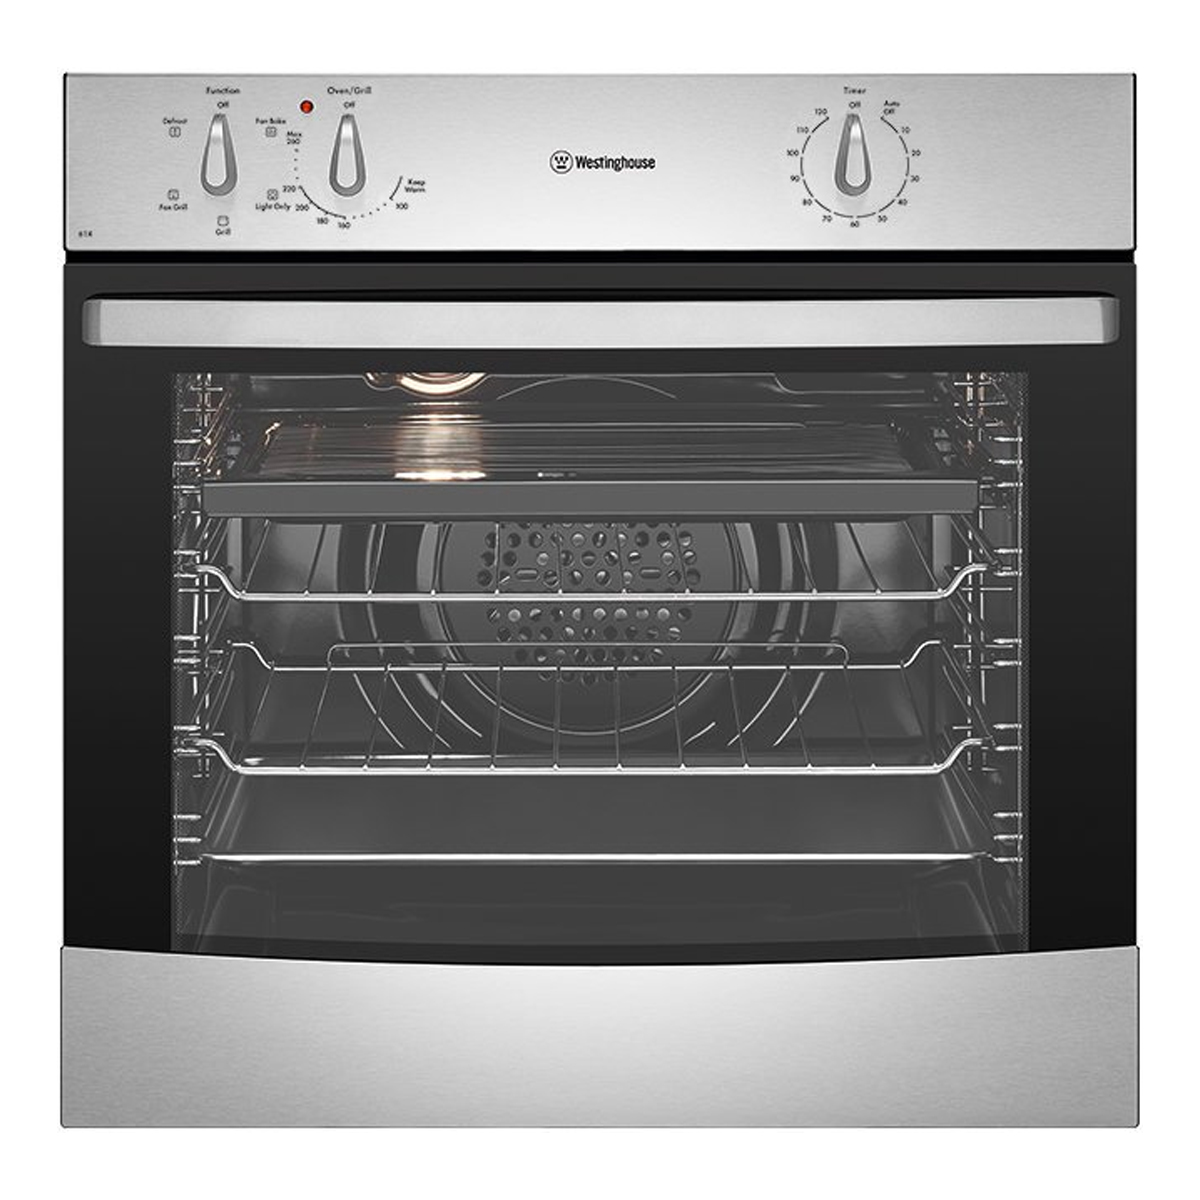 Westinghouse WVE614SA Electric Built-In Oven 61051